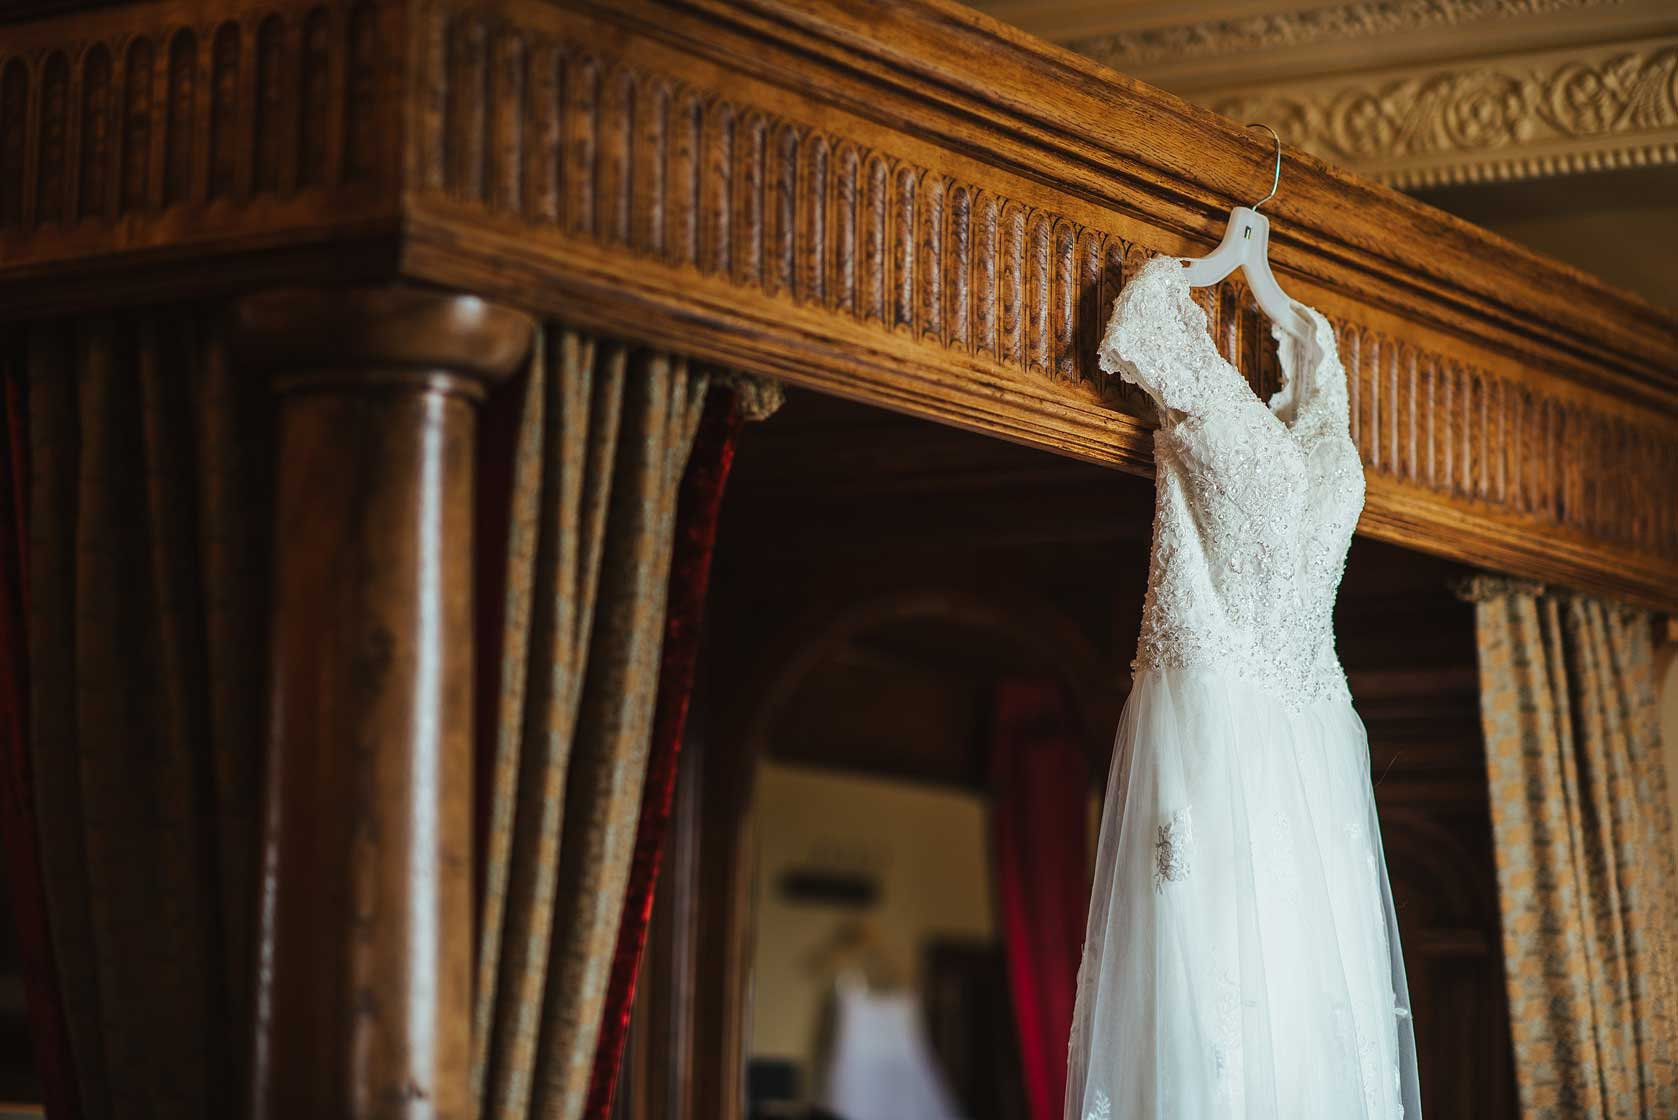 Wedding dress hanging on a four poster bed